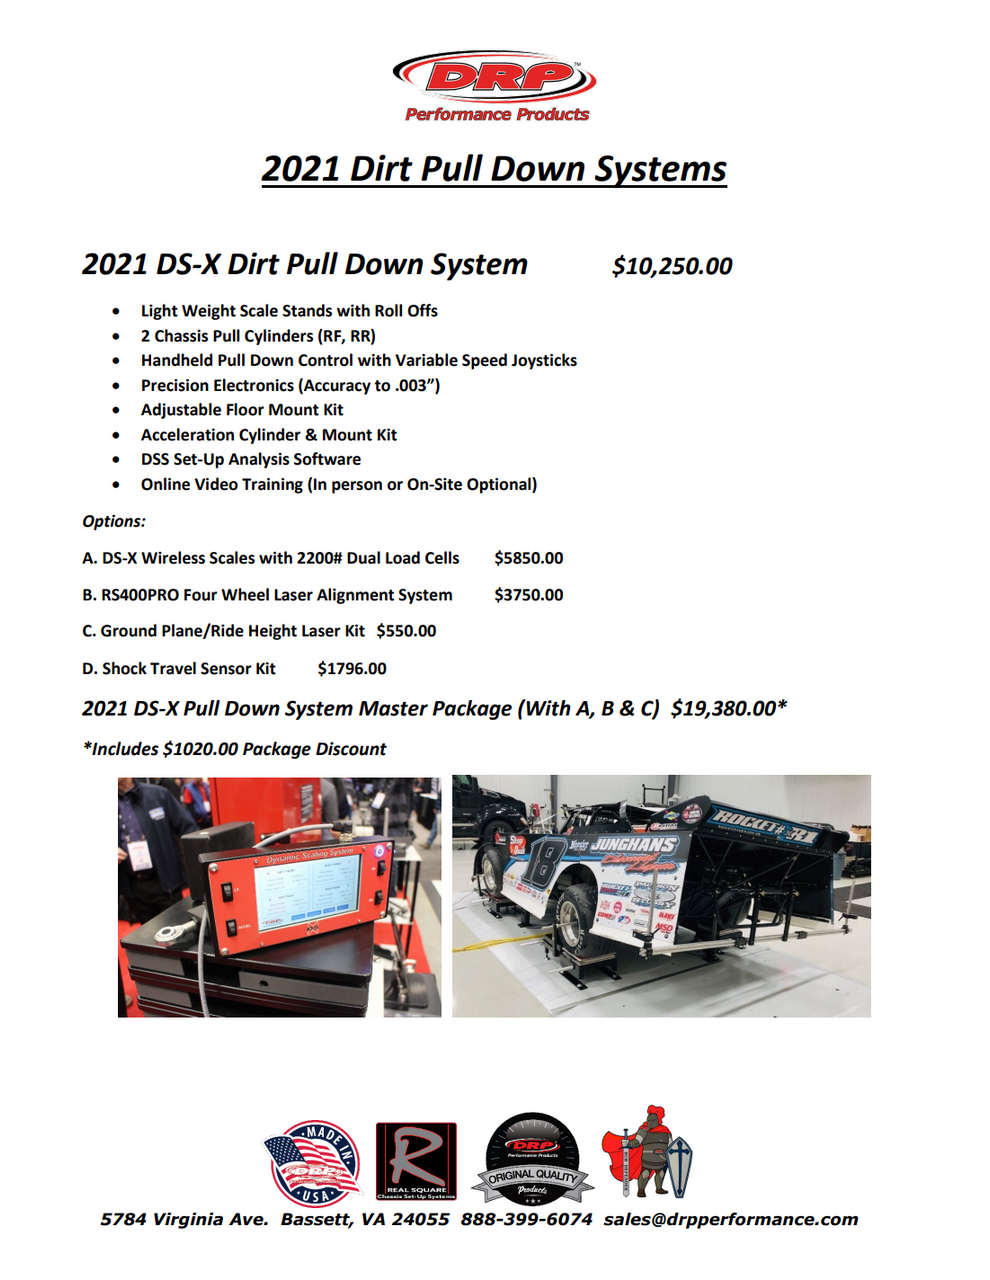 DS-X Dirt Pull Down System